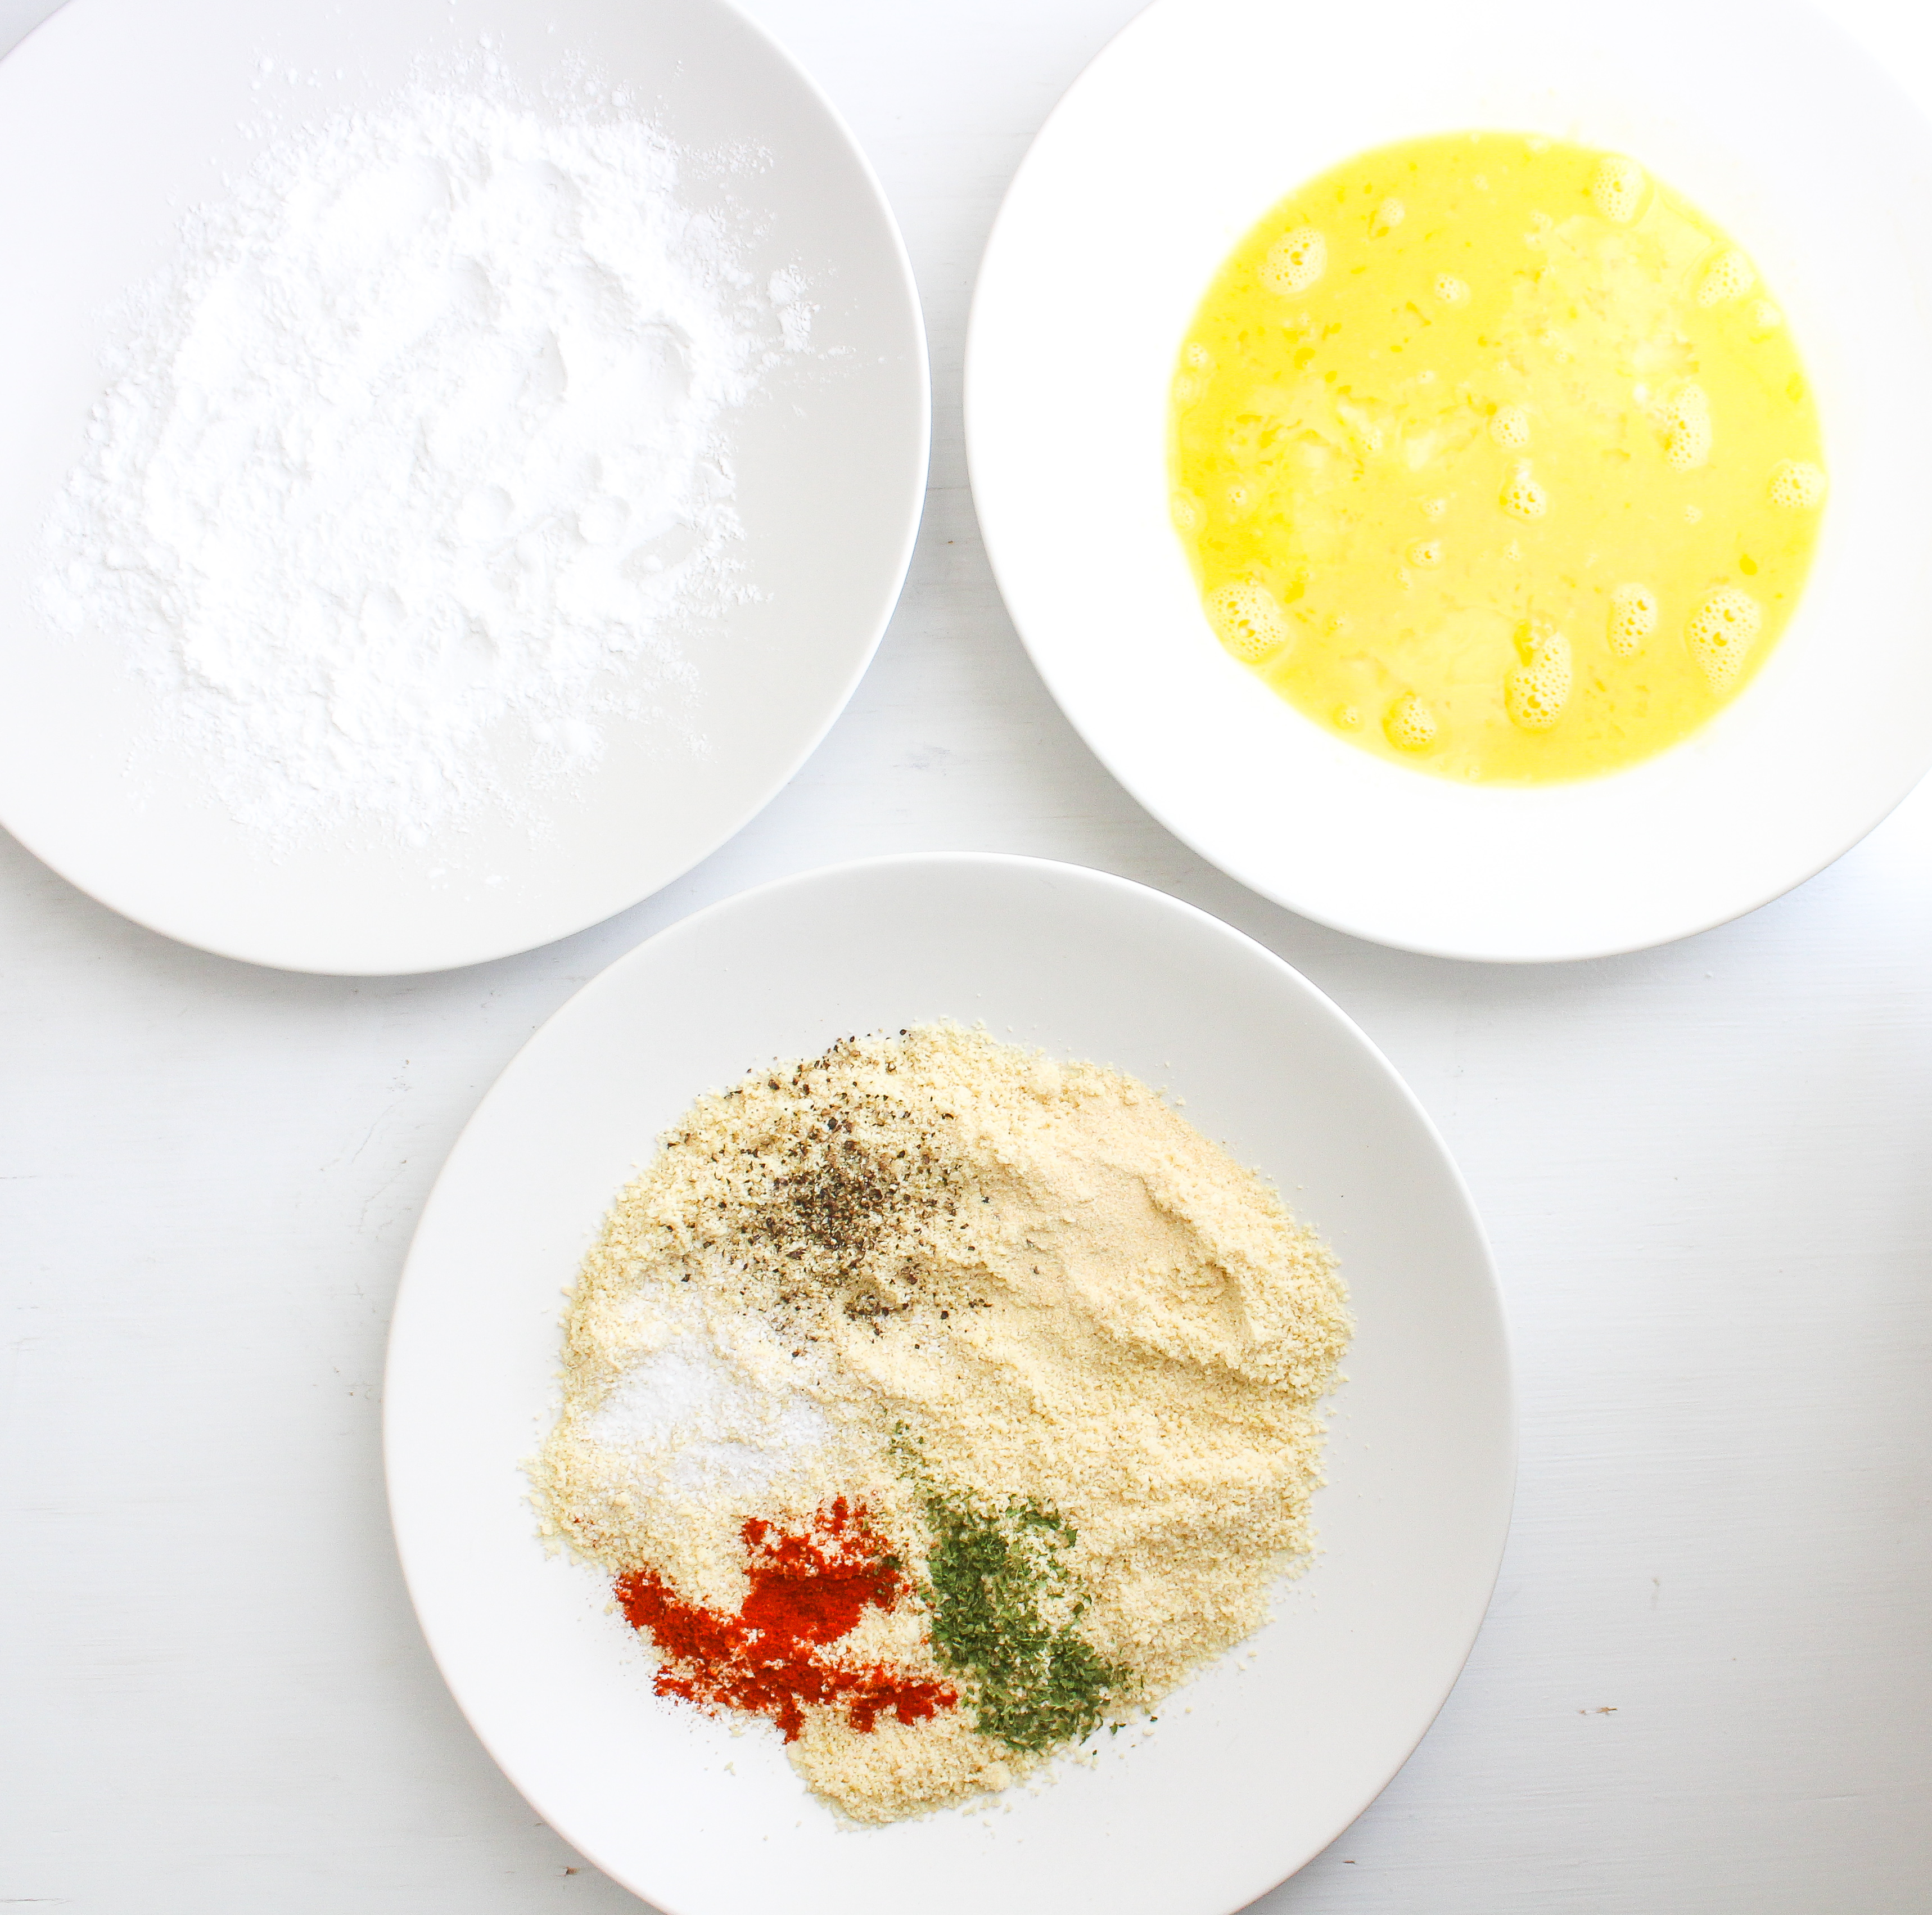 3 shallow plates, one has starch, one has beaten eggs and one has seasoned flour